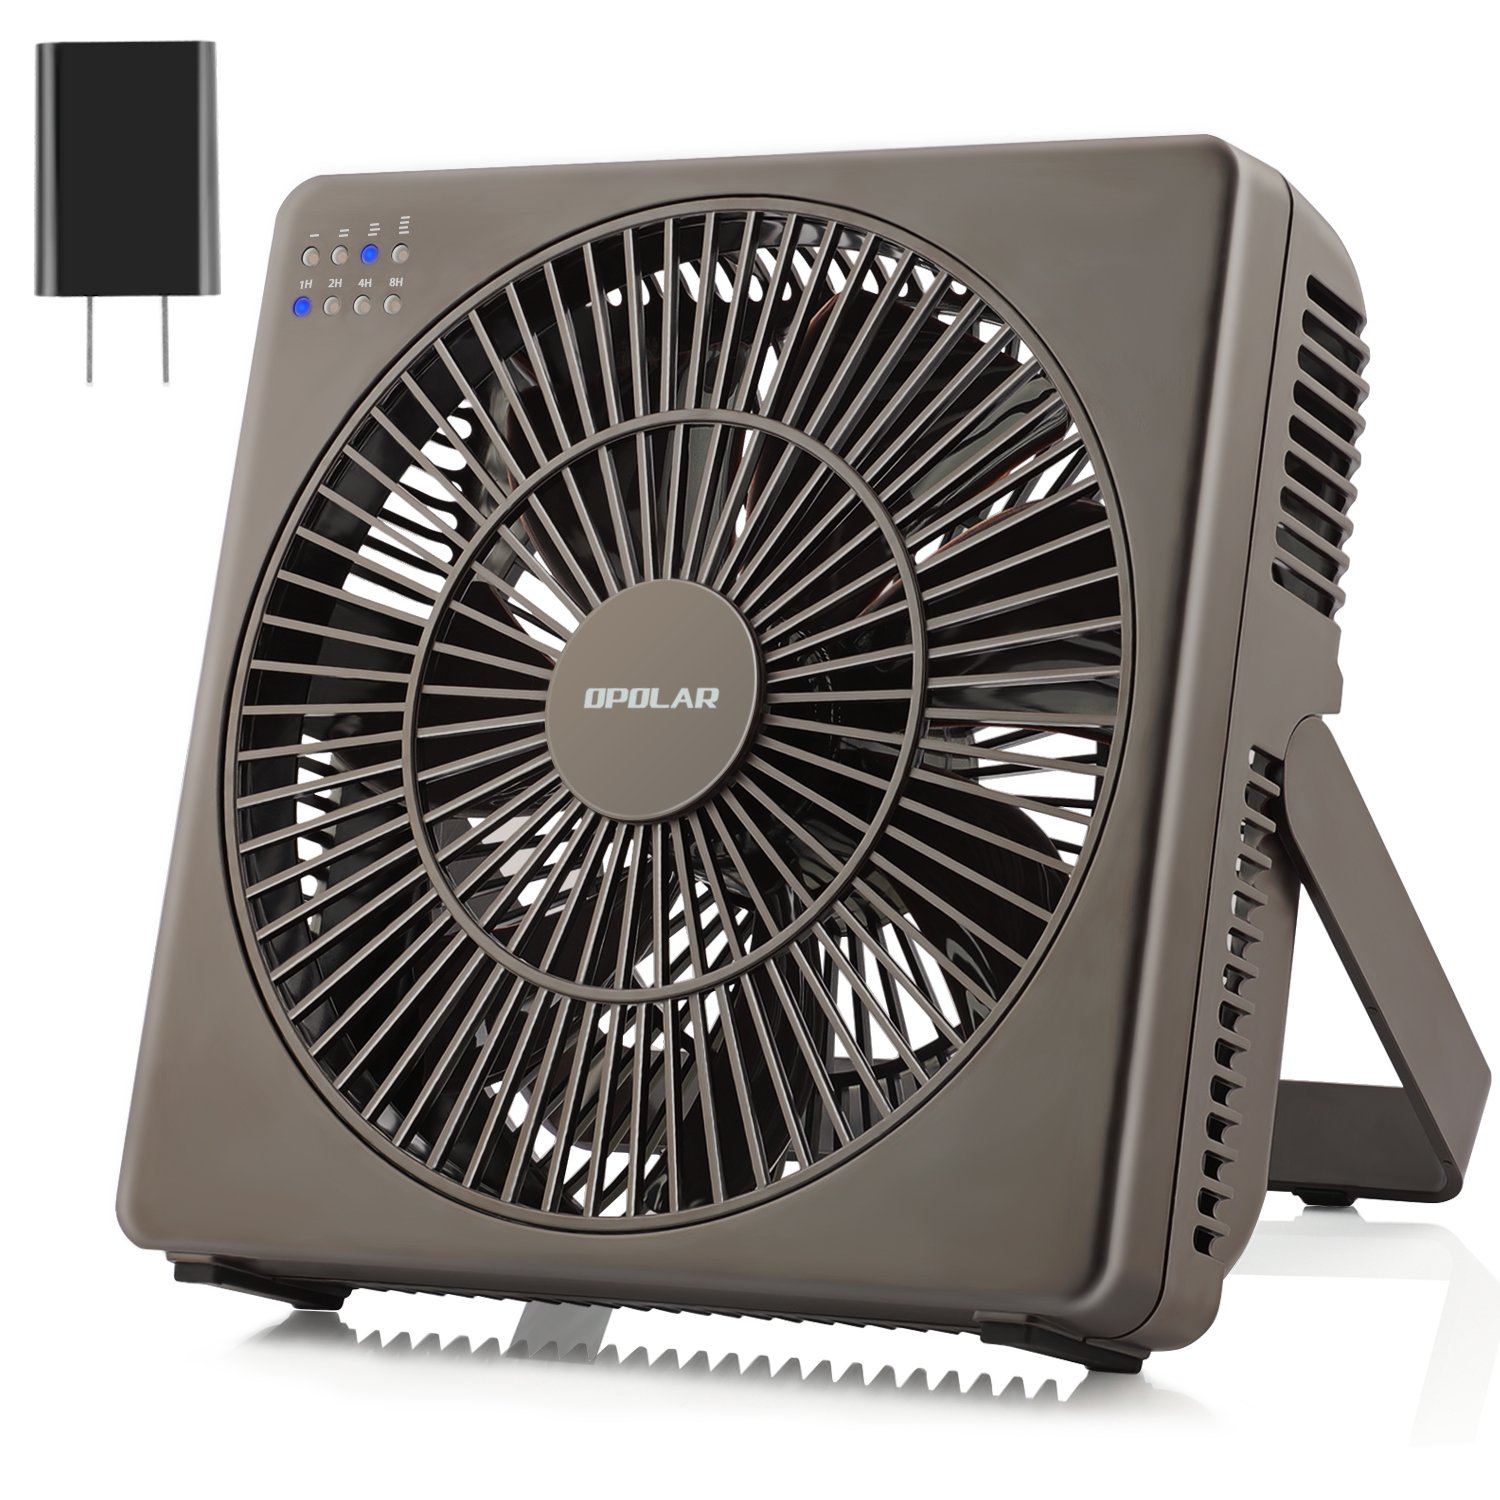 OPOLAR 8 Inch Desk Fan(Included Adapter), USB Operated, 4 Speeds+Natural Wind, Timer, Quiet Operation, Seven Blades, Adjustable Angle, Desktop Personal Cooling Box Fan for Office, Living Room, Bedroom 4335396799